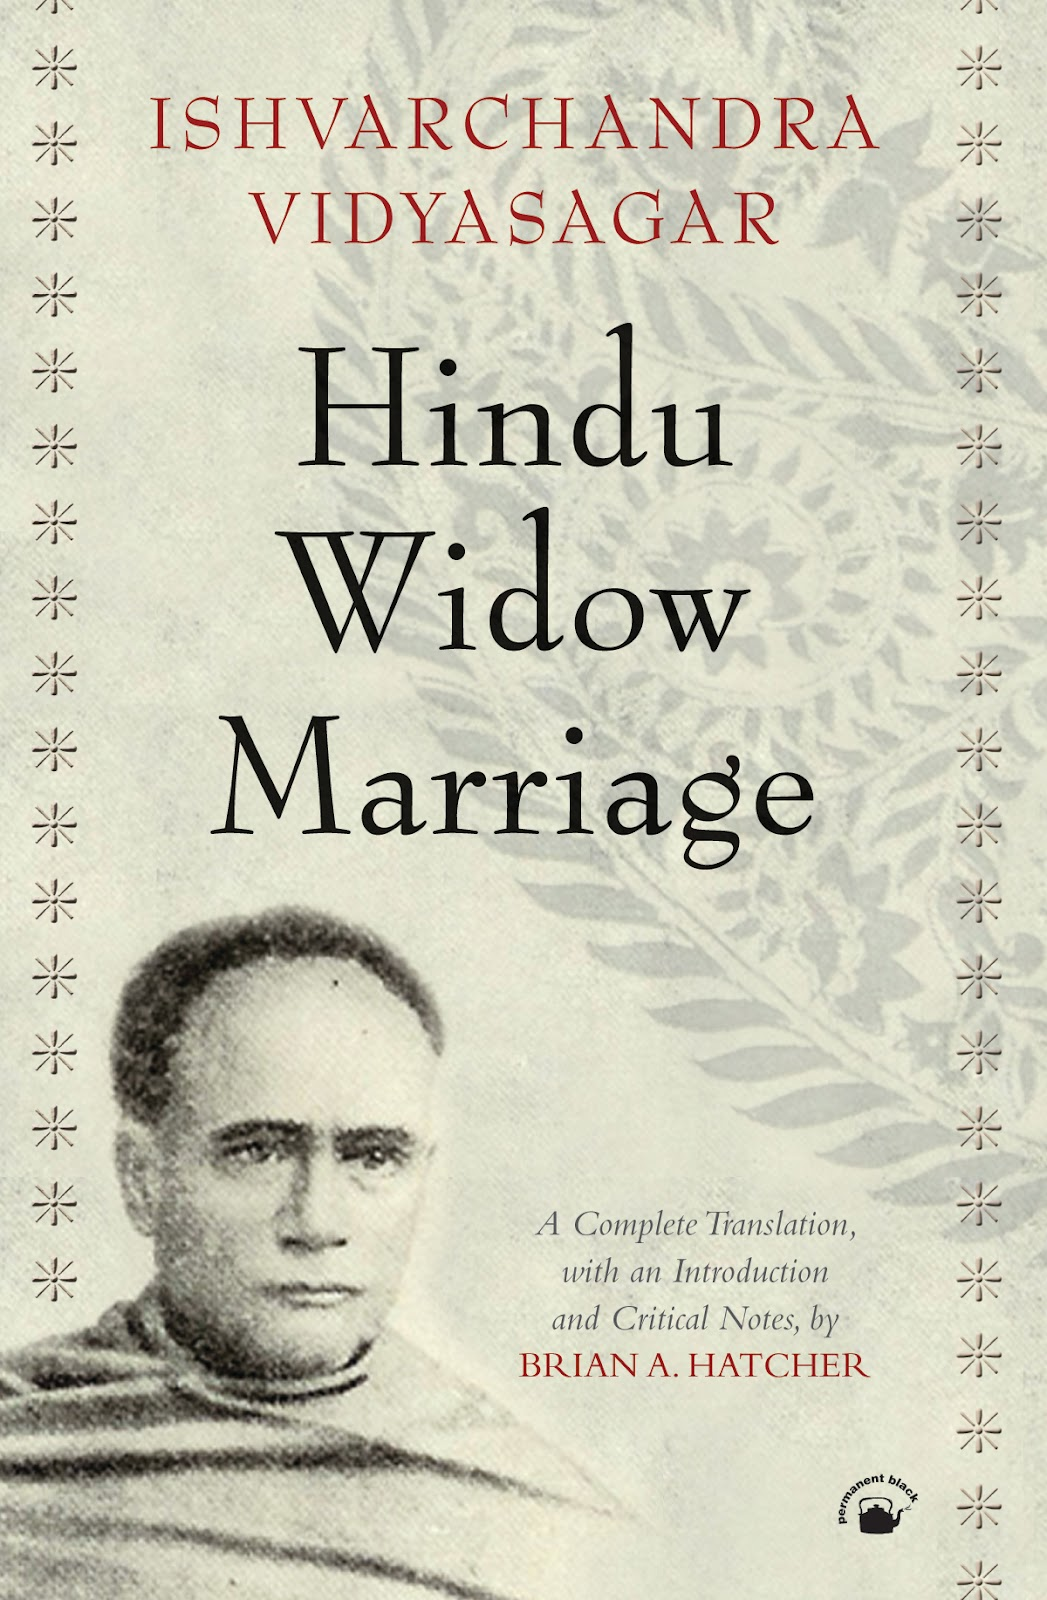 widow remarriage in india essays